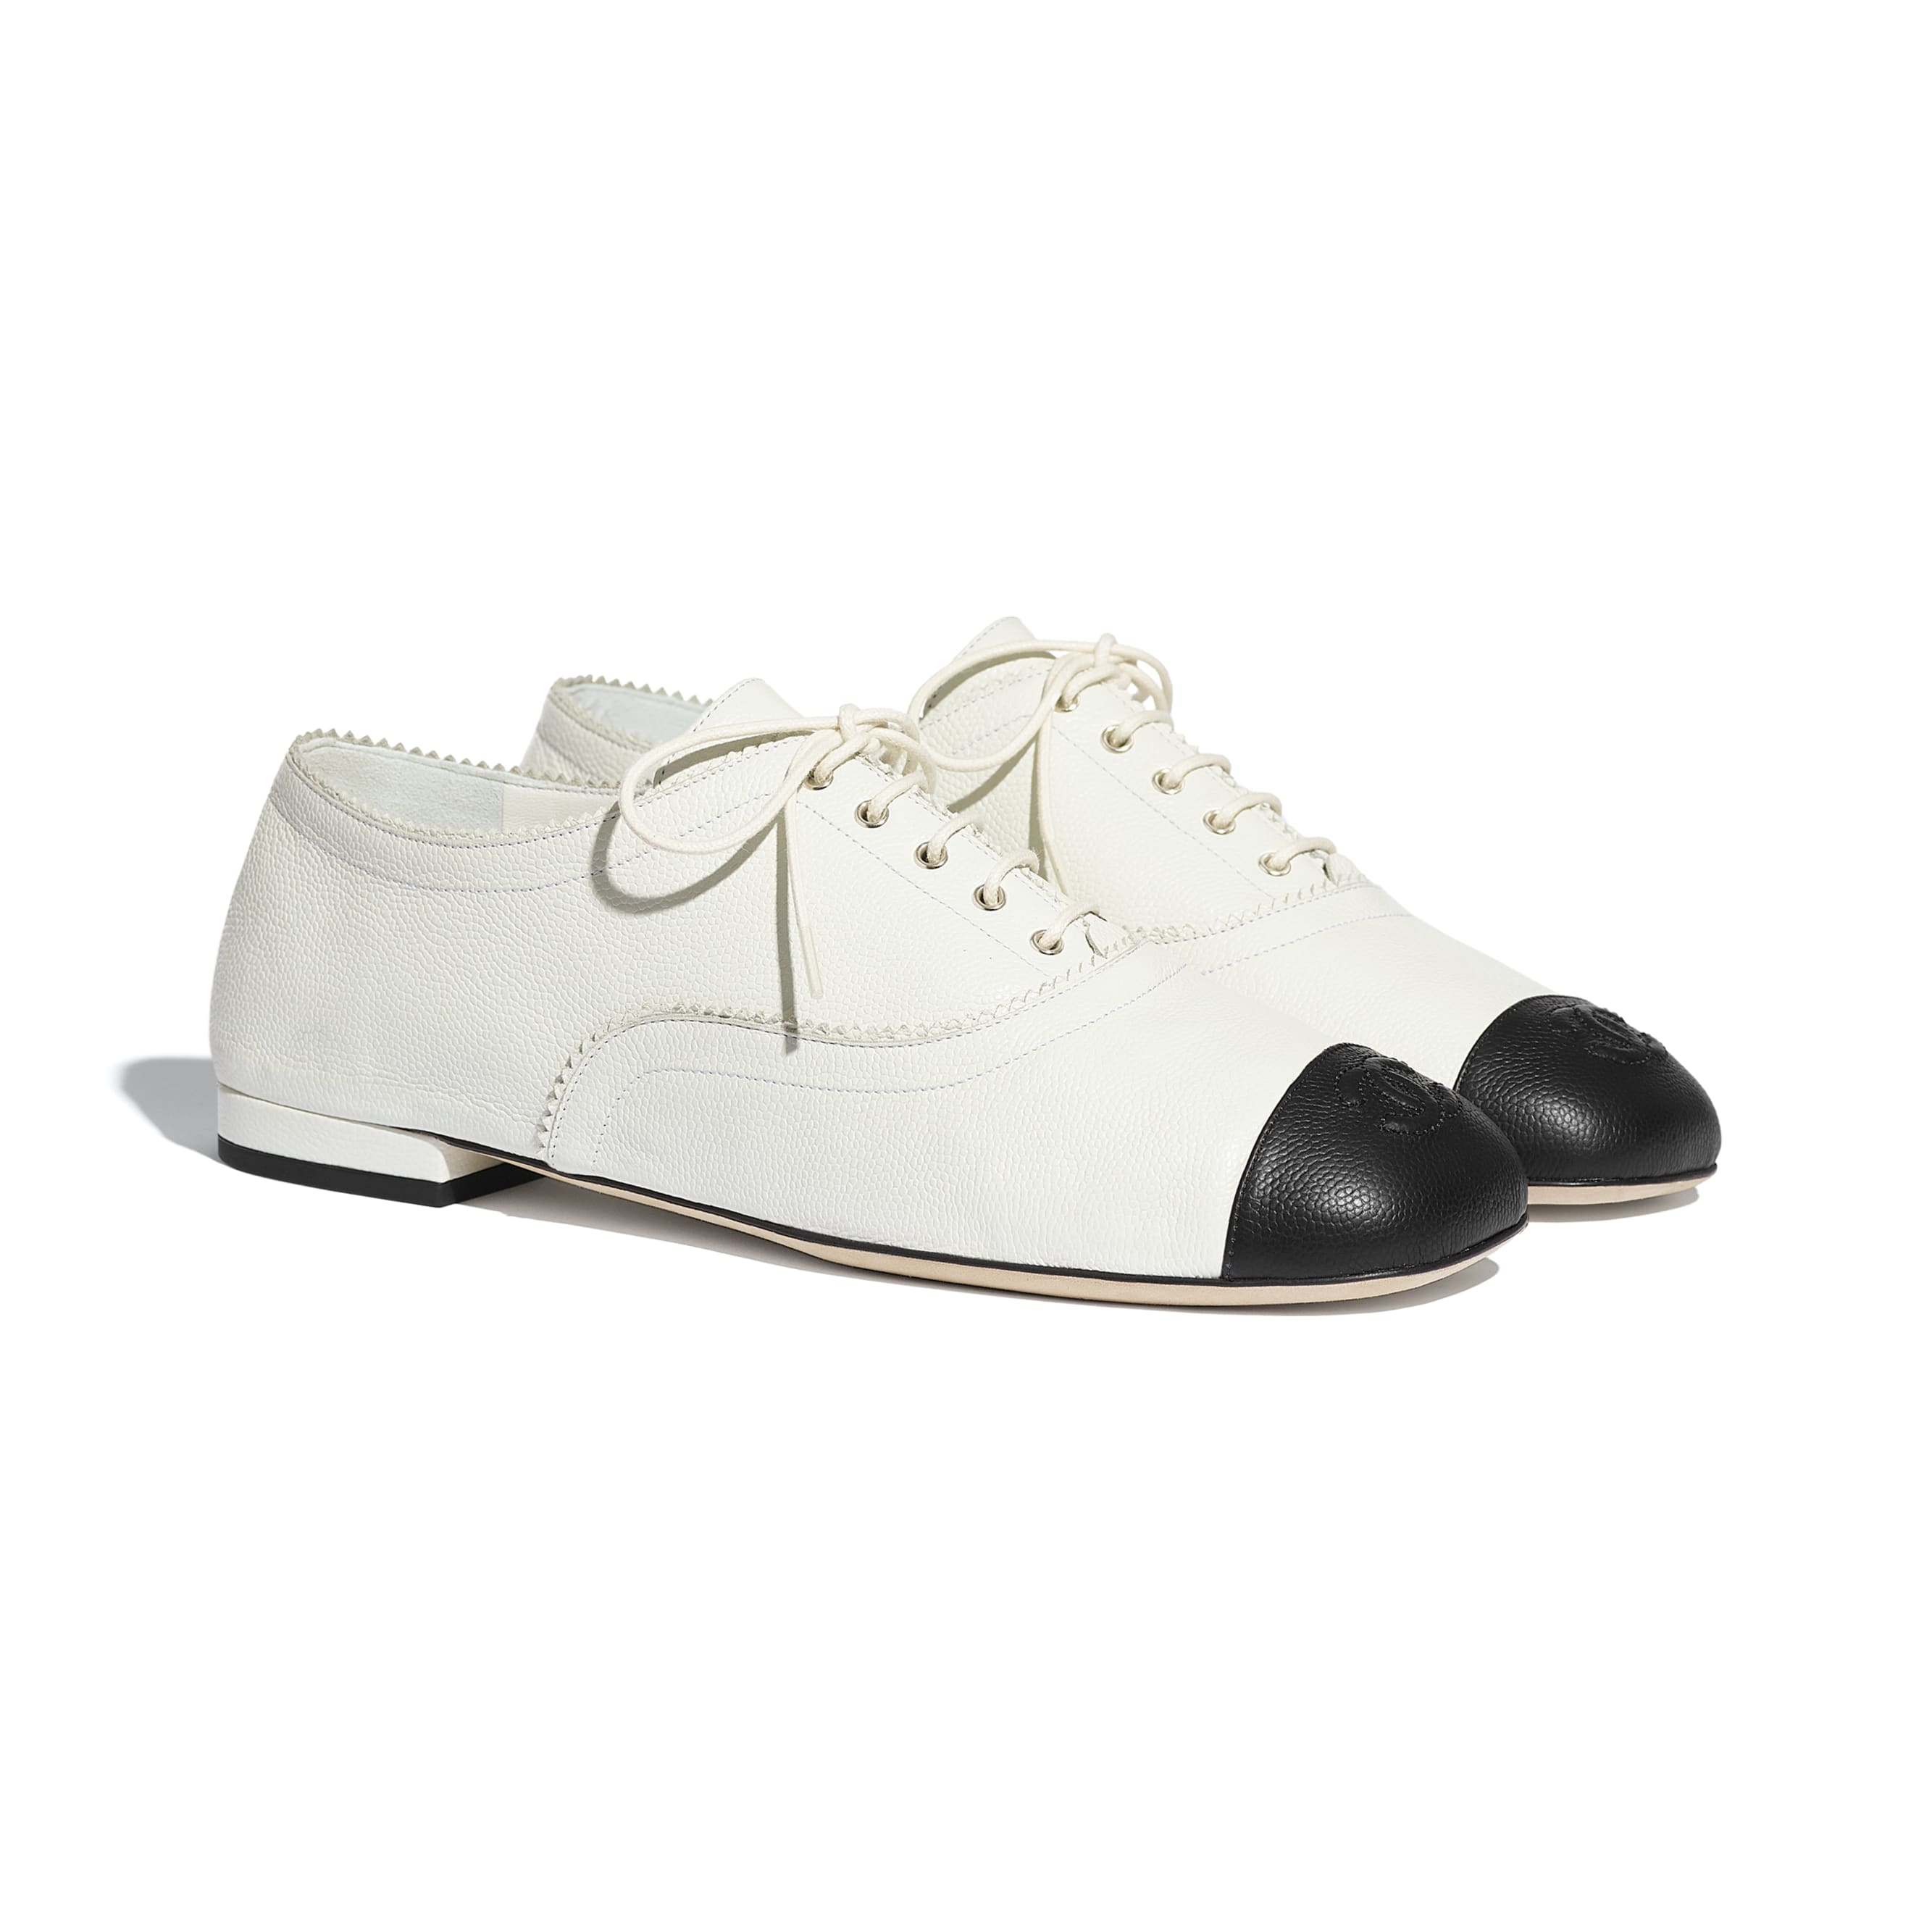 Lace Up - White & Black - Calfskin - CHANEL - Alternative view - see standard sized version